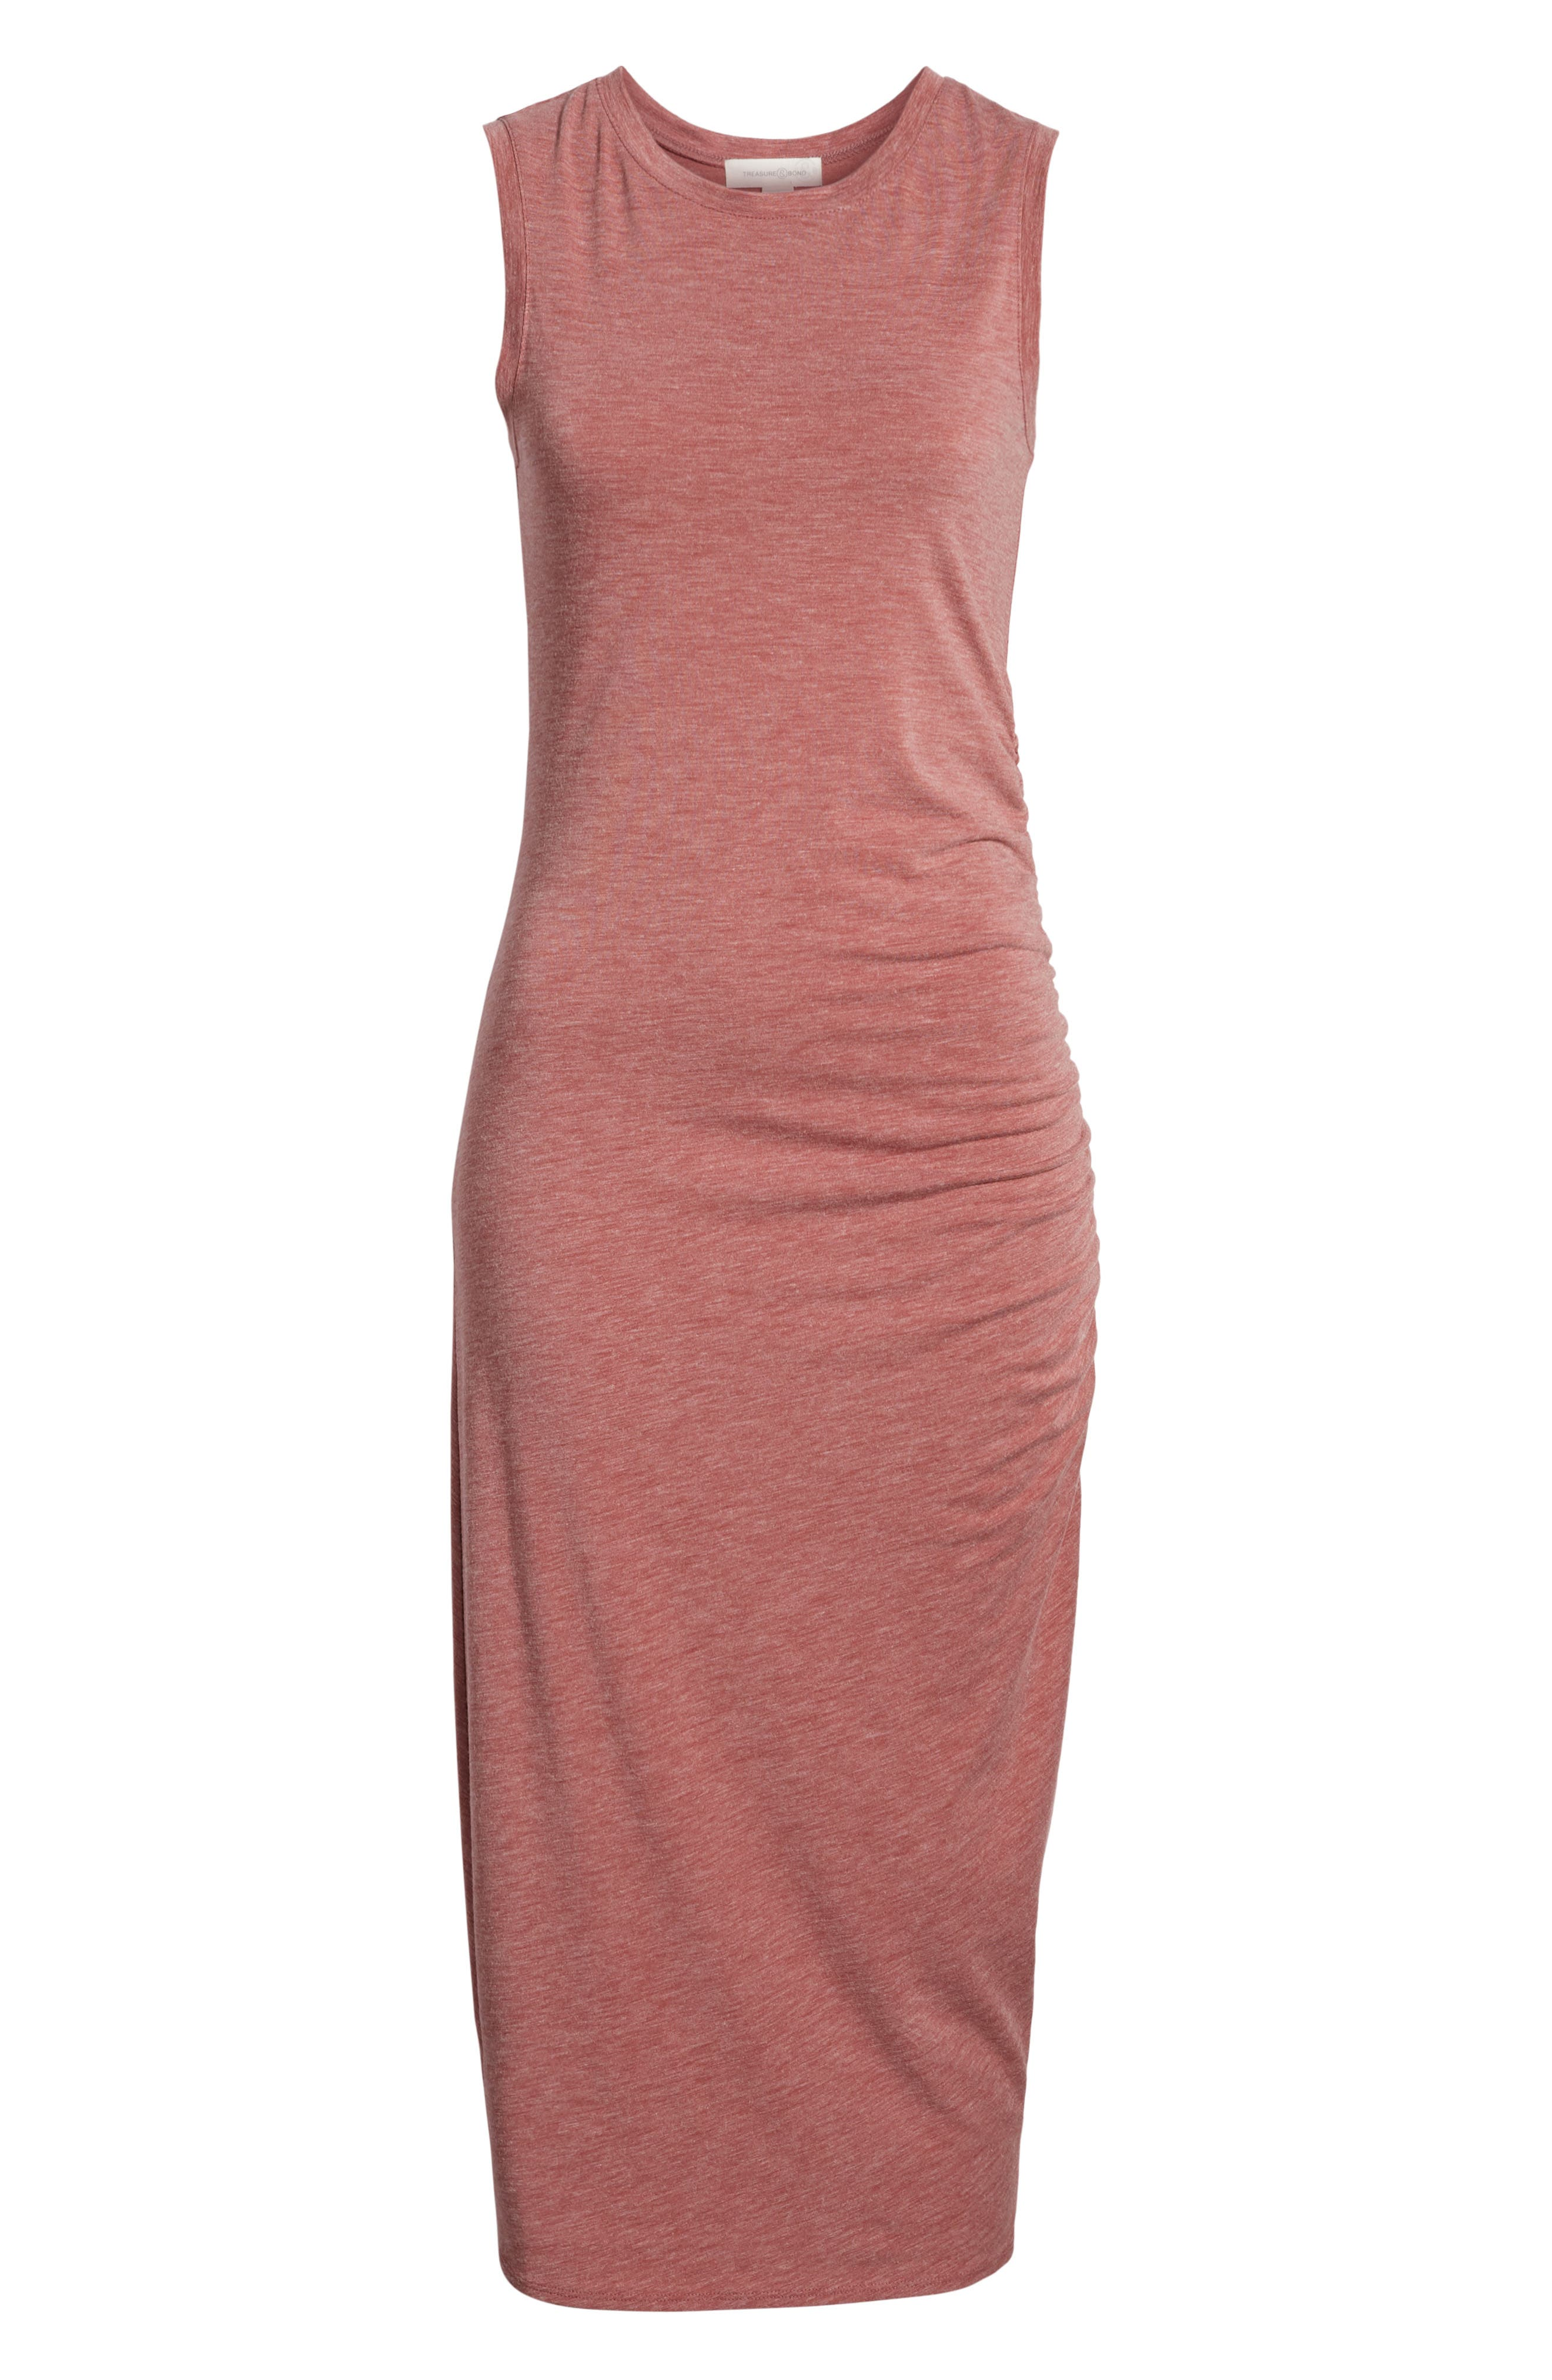 Sleeveless Side Ruched Dress,                             Alternate thumbnail 7, color,                             Burgundy Rouge Heather